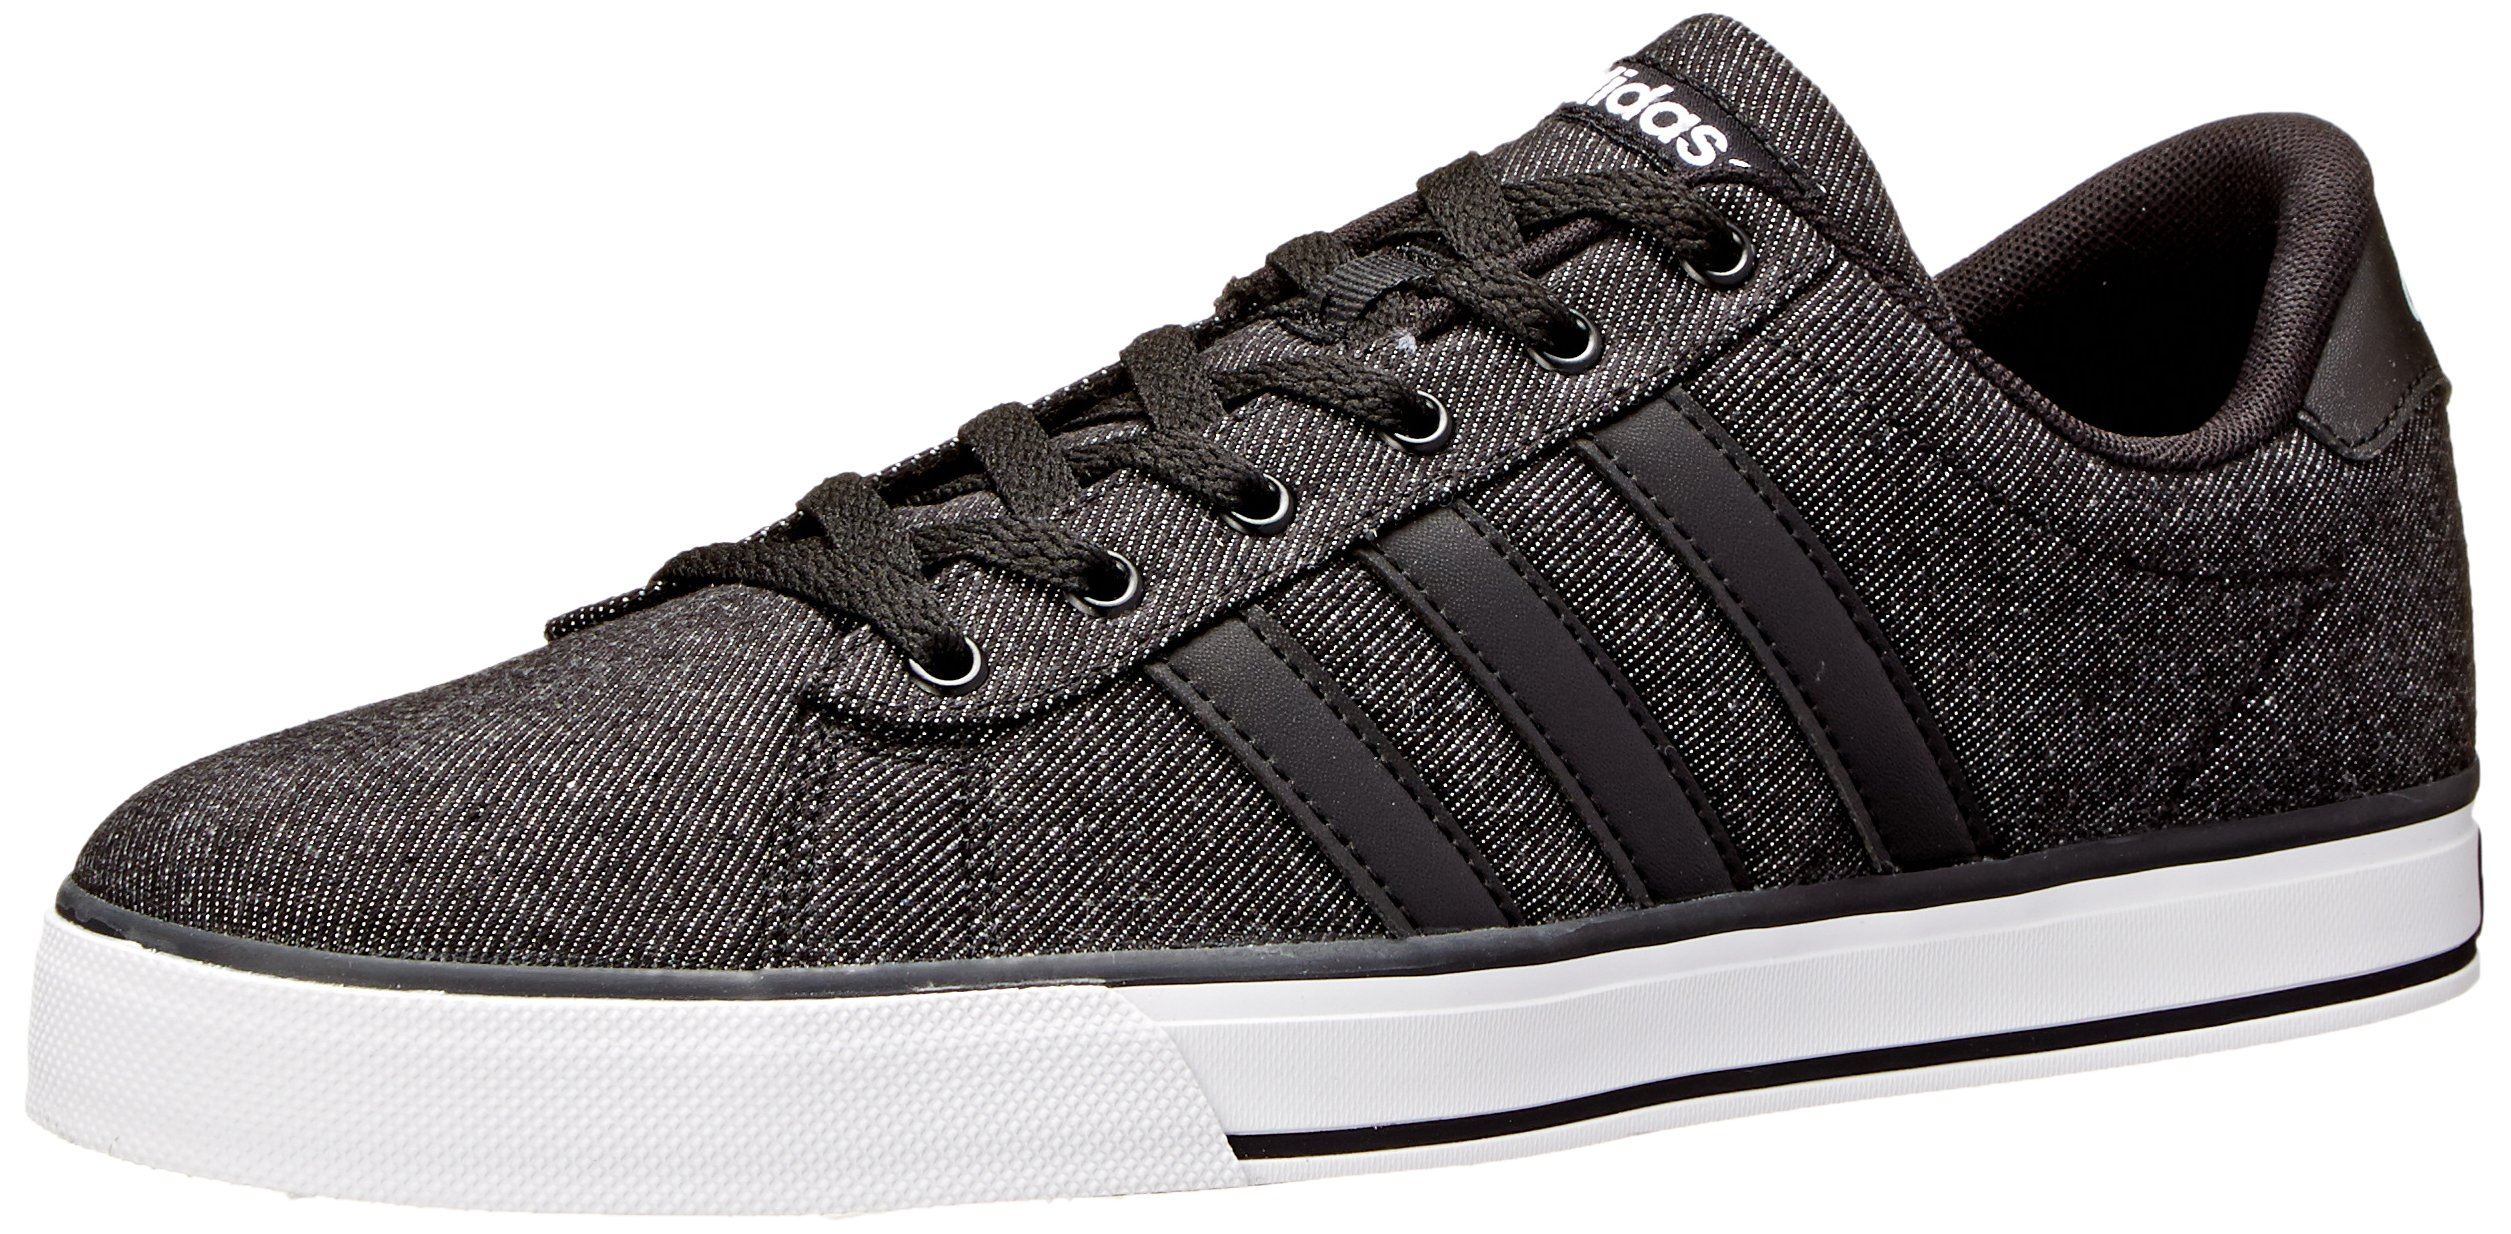 adidas Neo Men's SE Daily Vulc Lifestyle Skateboarding Shoe,Black/Black/White,12 M US by adidas